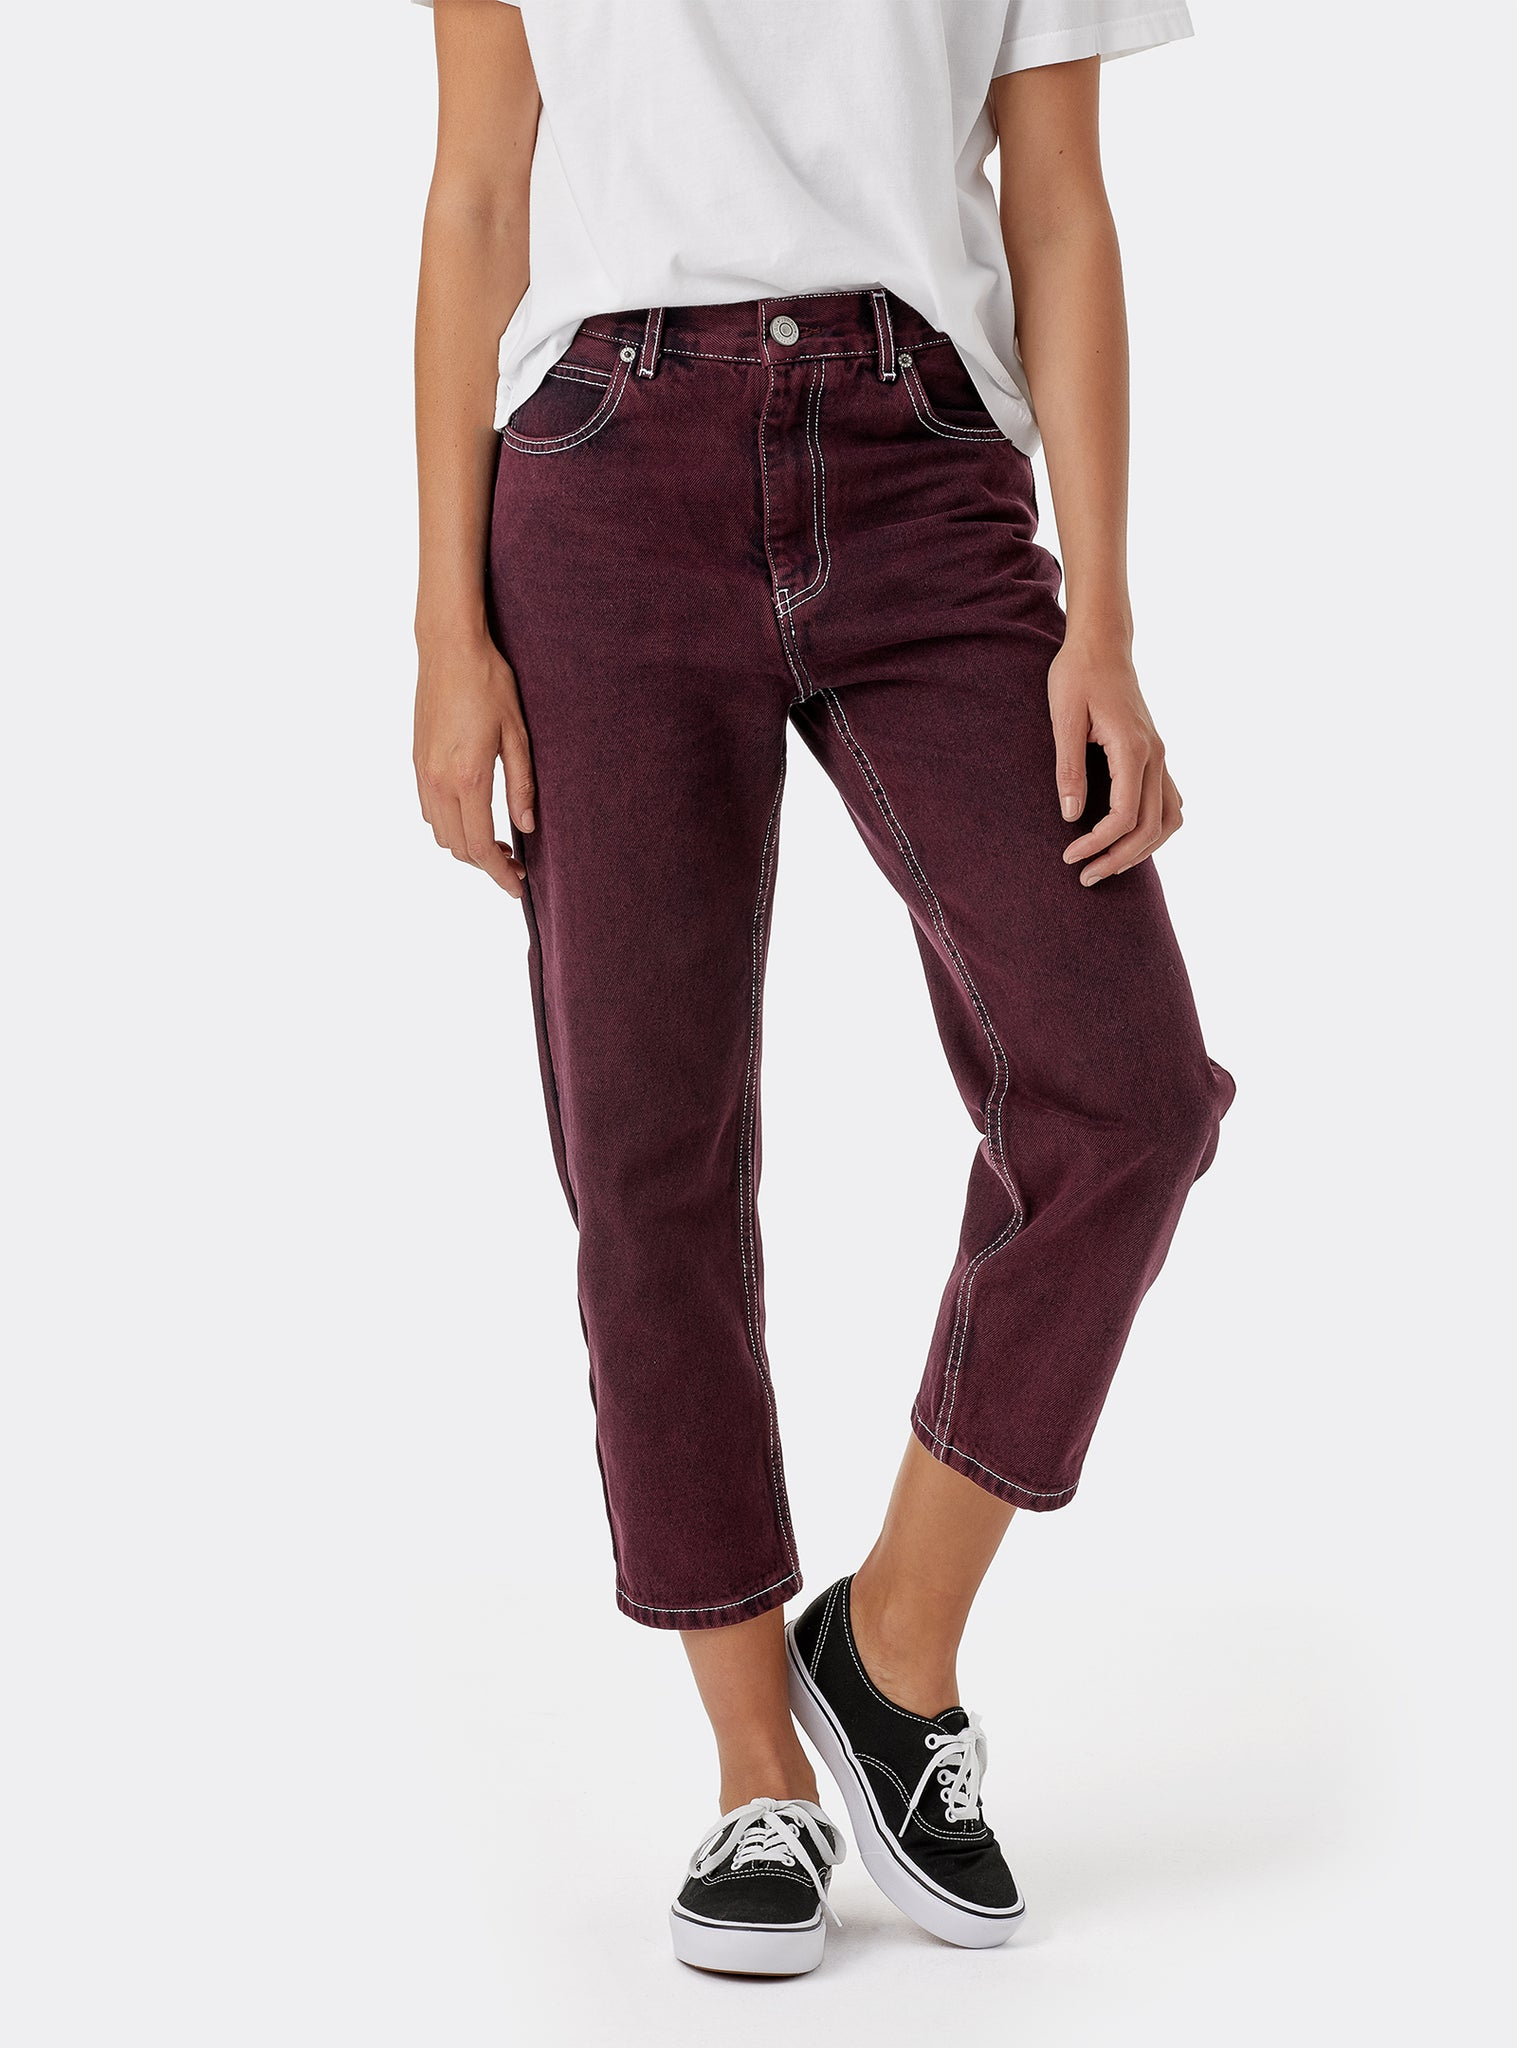 Barrel Pantalons Rouge